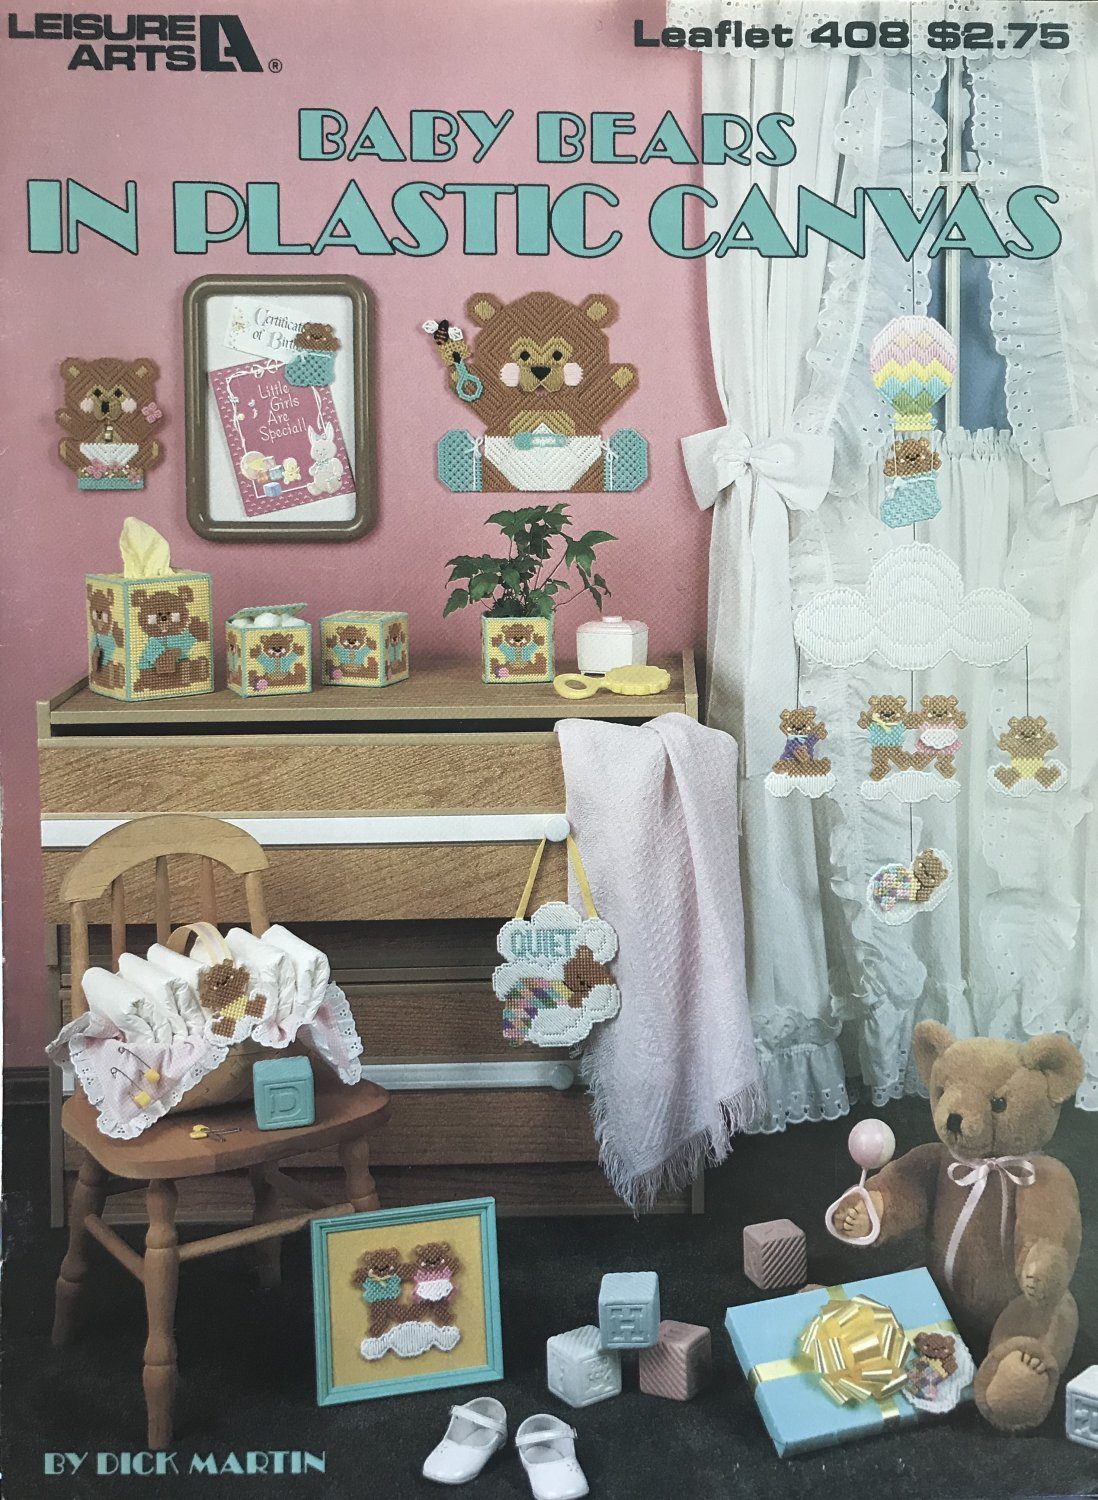 Baby Bears in Plastic Canvas By Dick Martin Leisure Arts 408